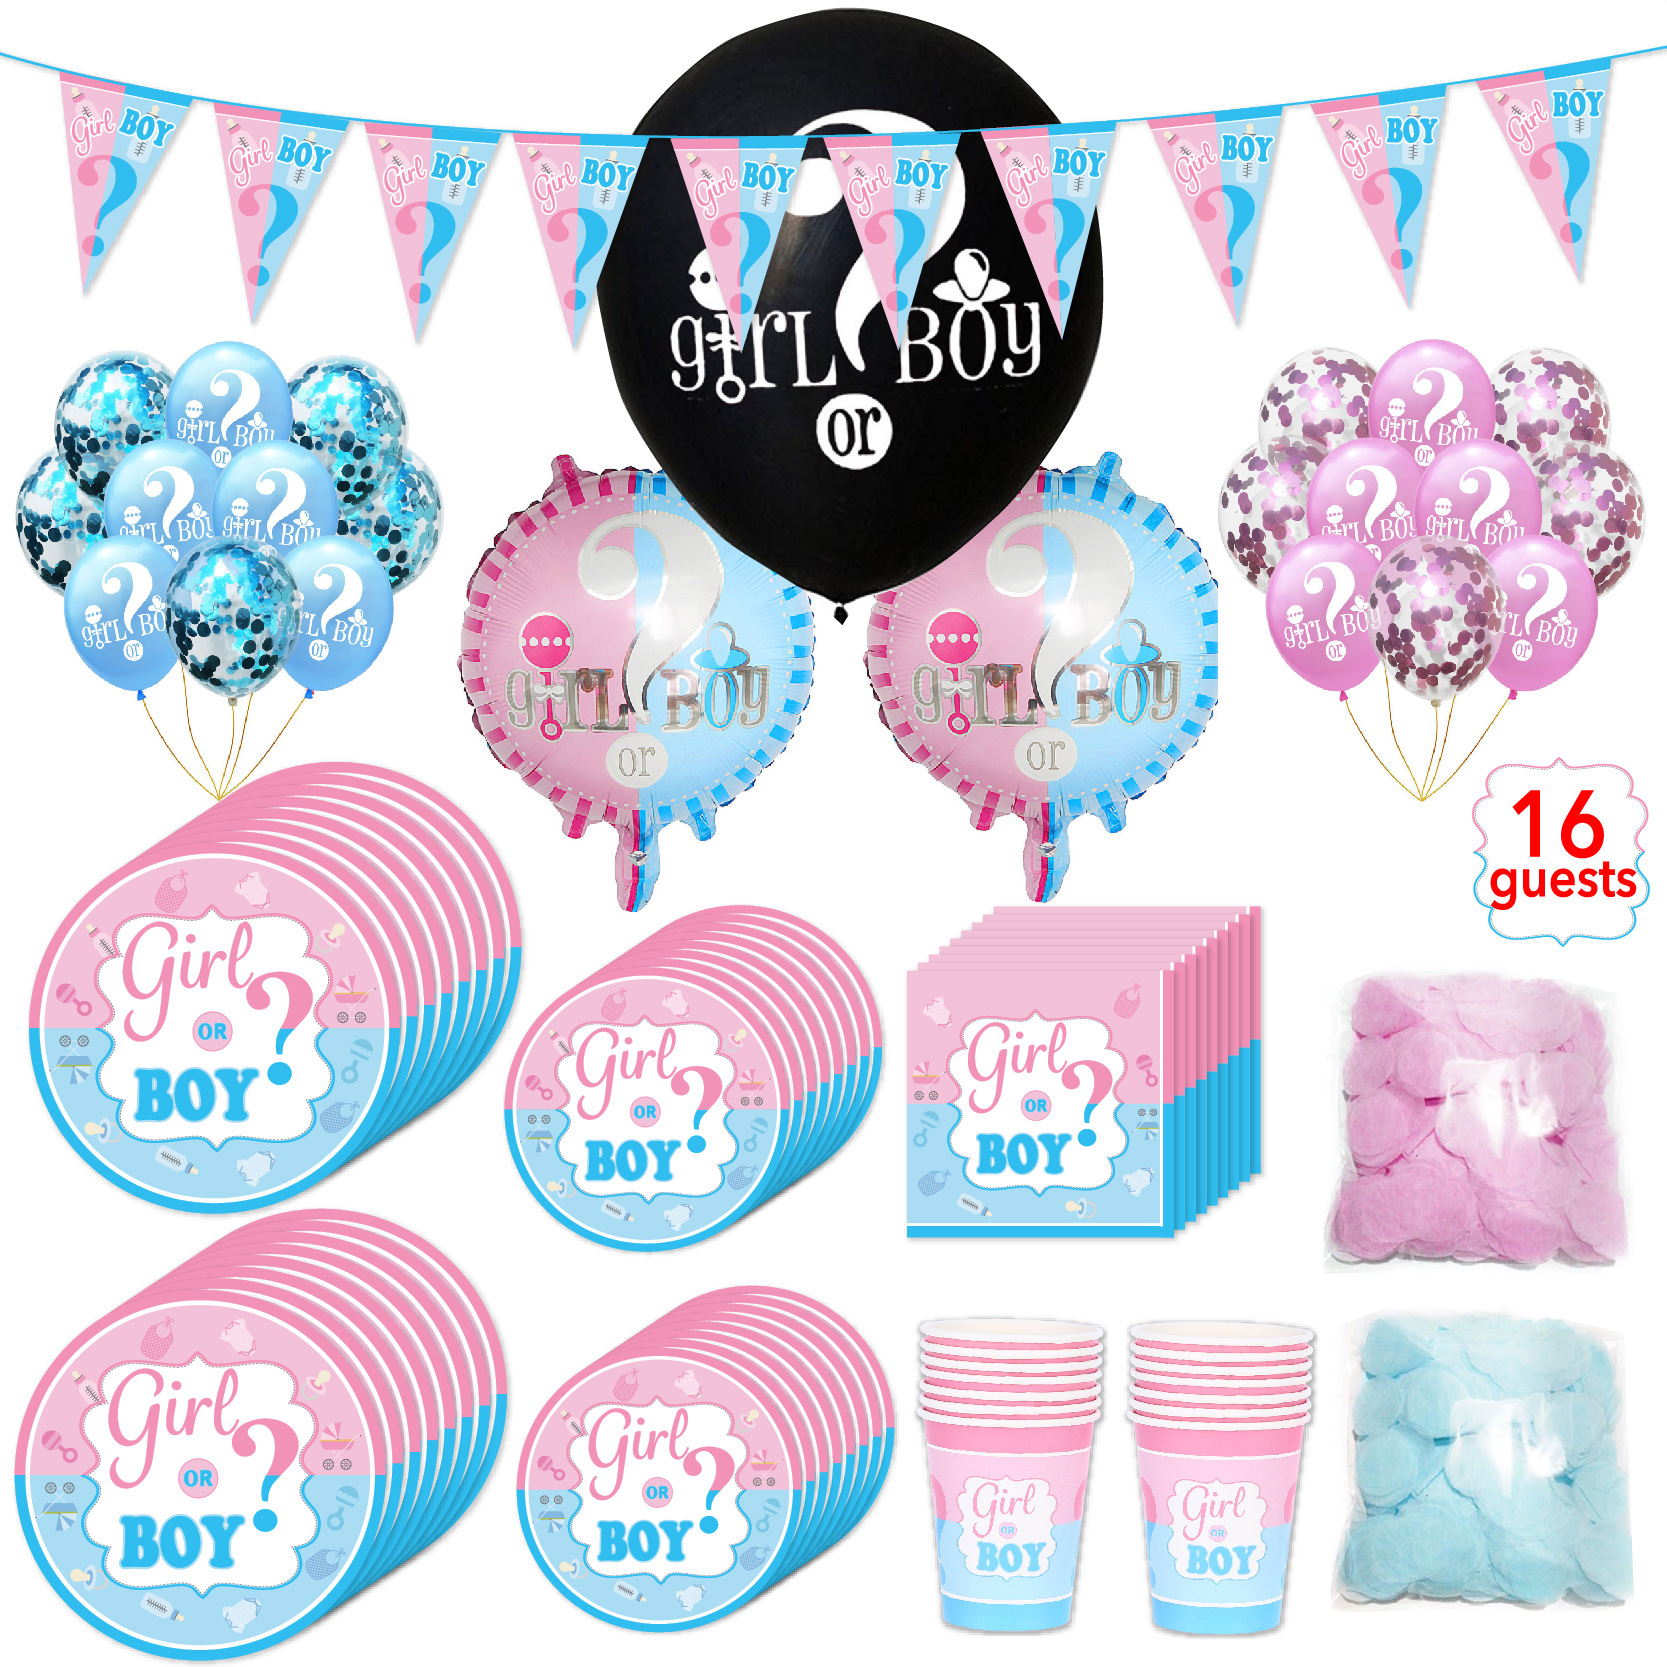 1 Set Baby Shower Boy Girl Decorations Set Baby Balloons Gender Reveal Kids Birthday Party Gender Reveal Party Supplies